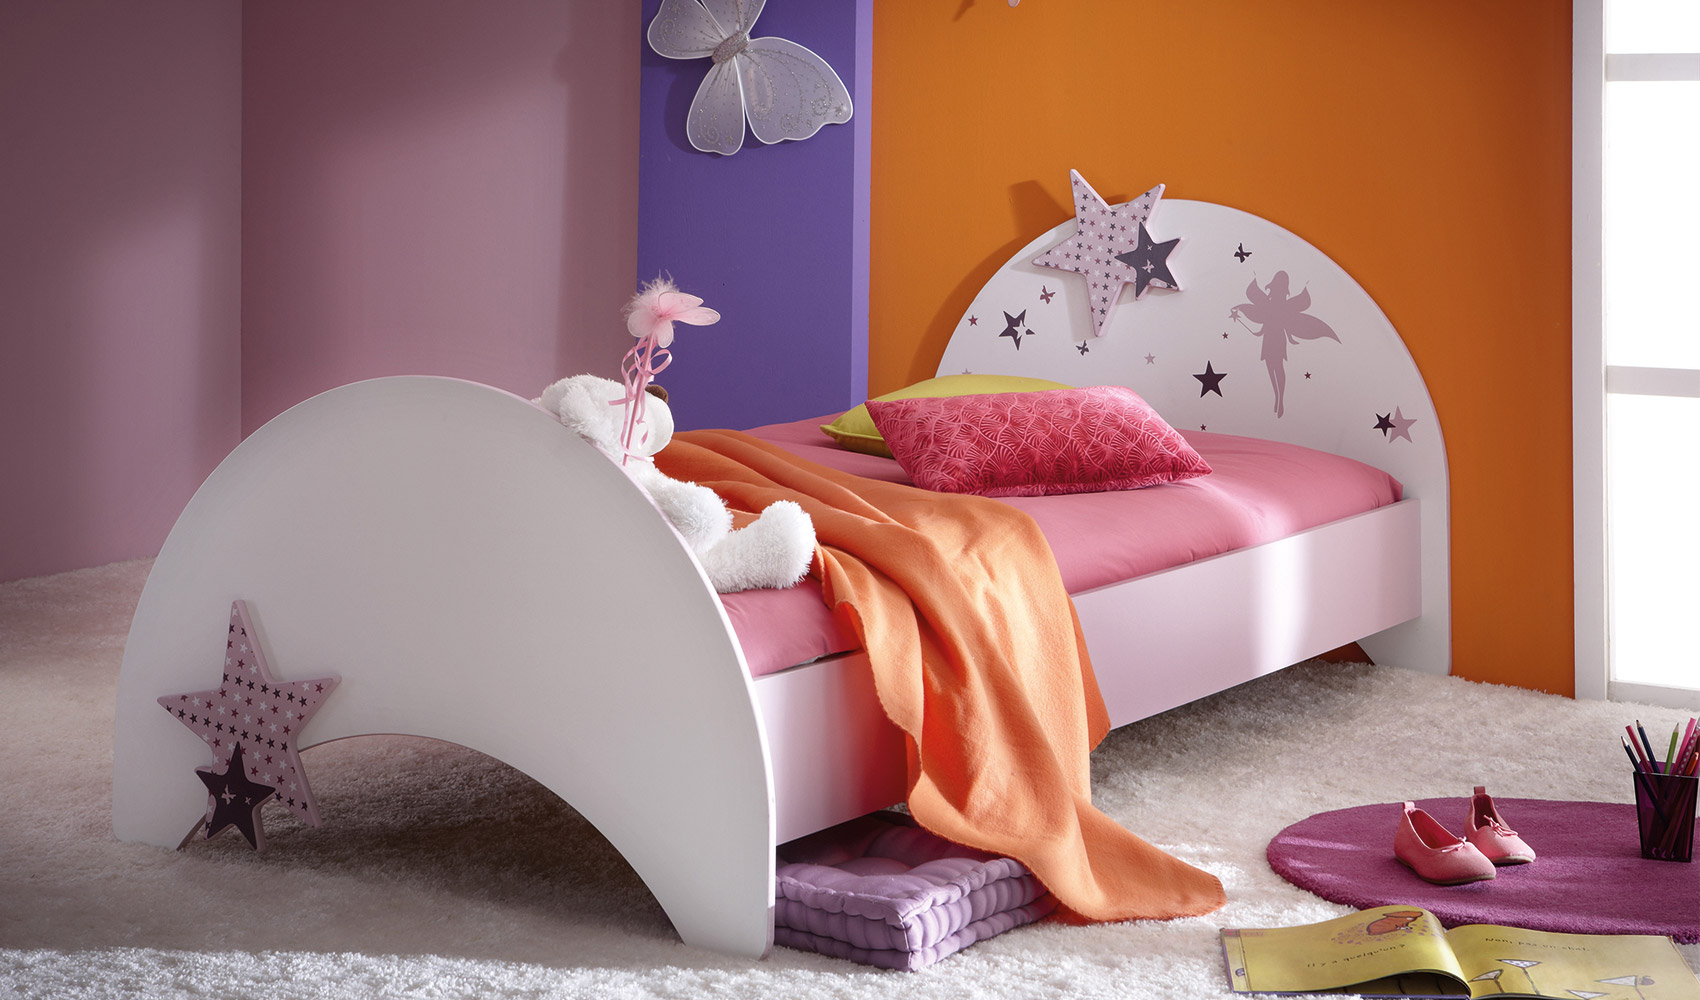 kinderbett weiss violett einzelbett bett m dchen feen und sterne 90x200 cm ebay. Black Bedroom Furniture Sets. Home Design Ideas